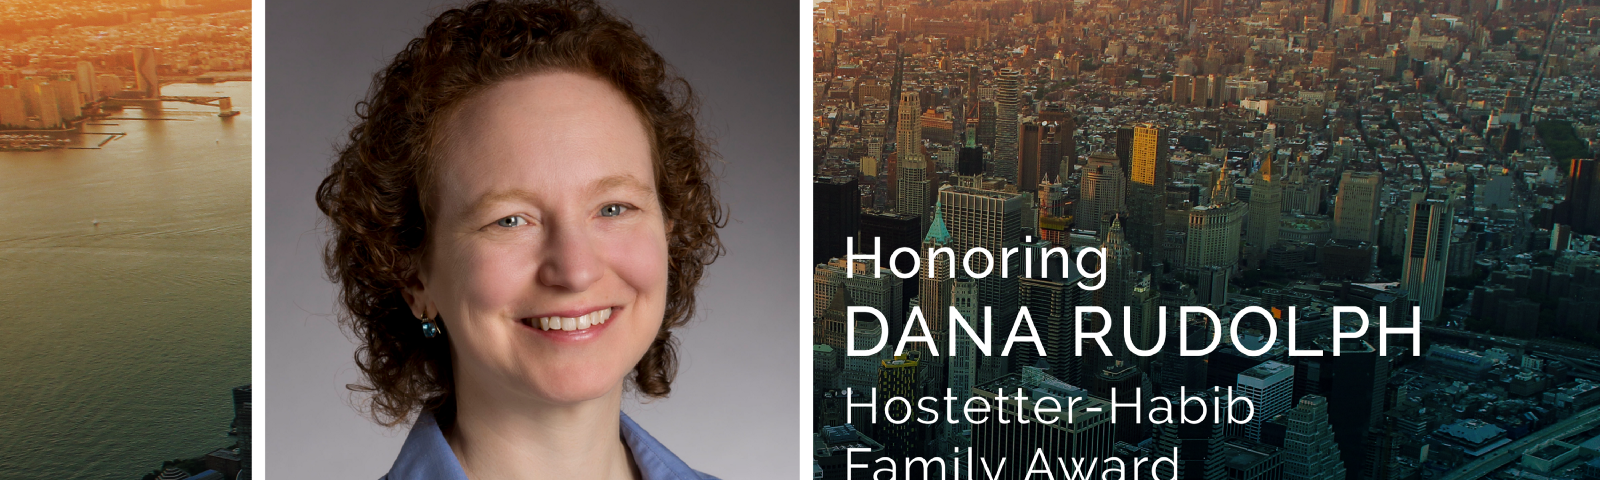 INTERVIEW: Dana Rudolph on Writing for LGBTQ Parents, Receiving Award from Family Equality Council